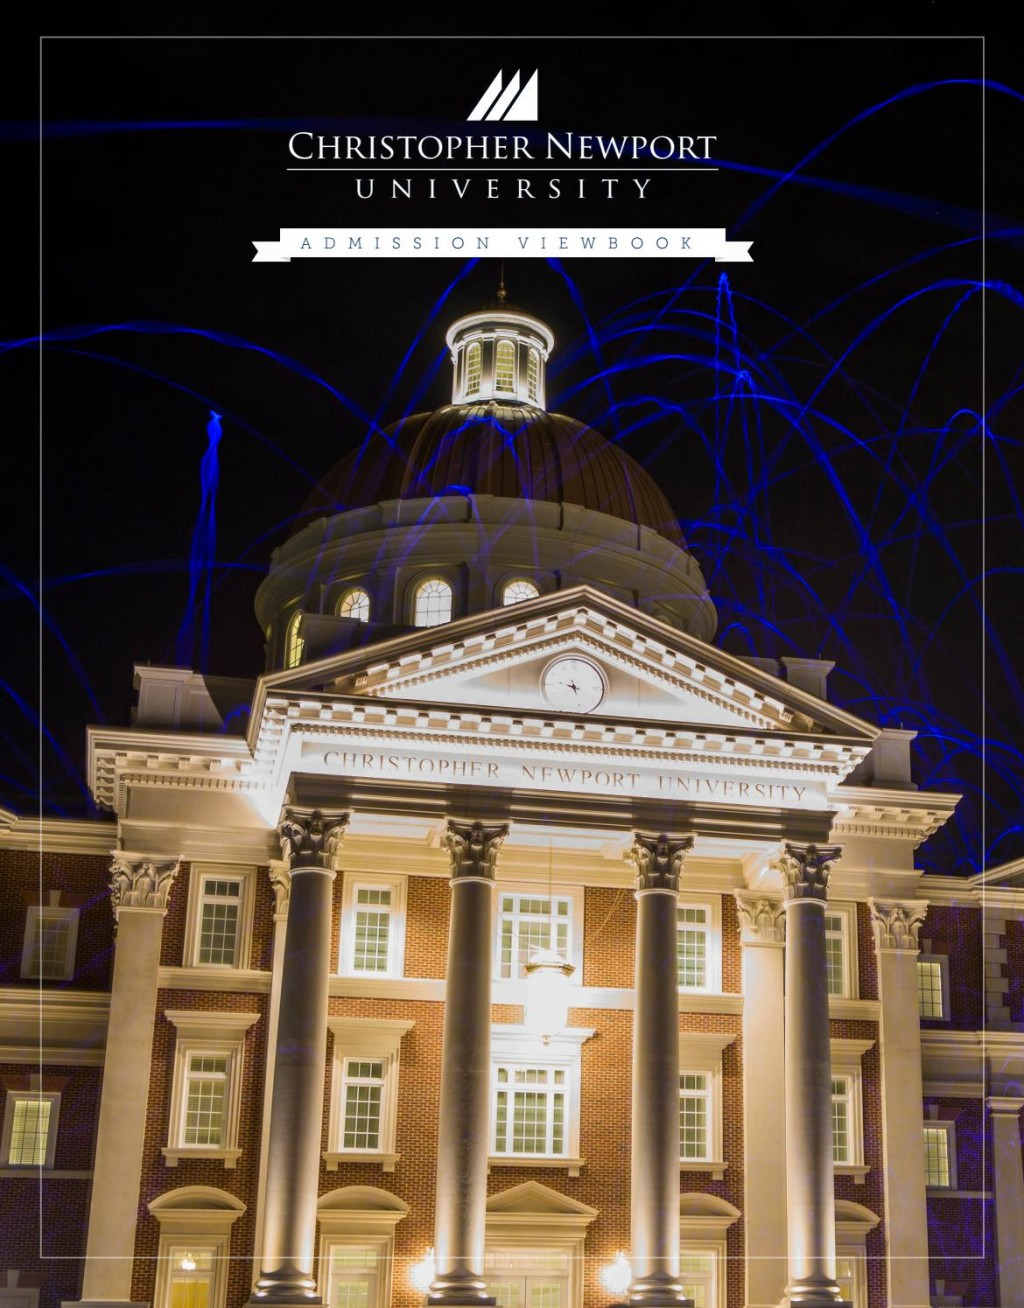 013 Christopher Newport University Application Essay Page 1 Unusual Large